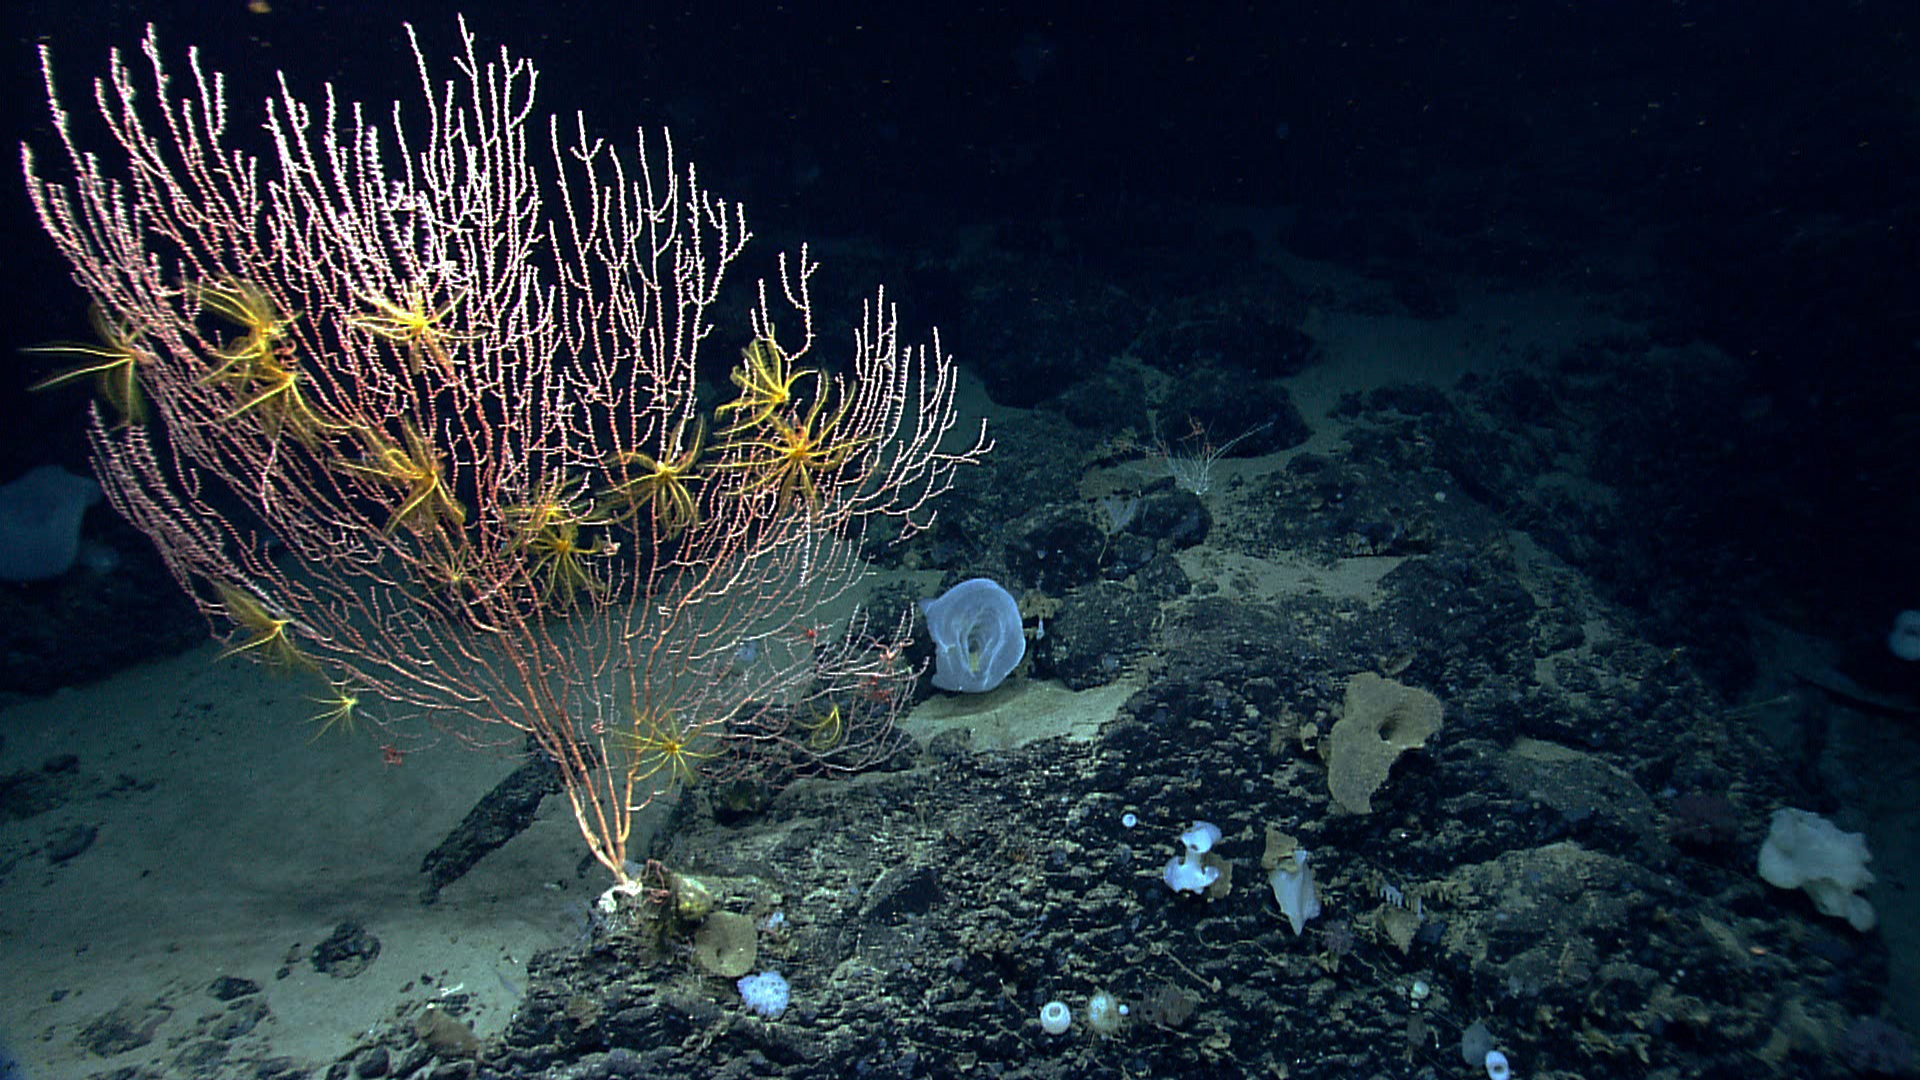 Scientists have discovered 73 species of corals in the Northeast Canyons and Seamounts, an underwater chain of mountains. A NOAA expedition pictured this colony of Jasonisis, a bamboo coral. (Photo Courtesy NOAA)